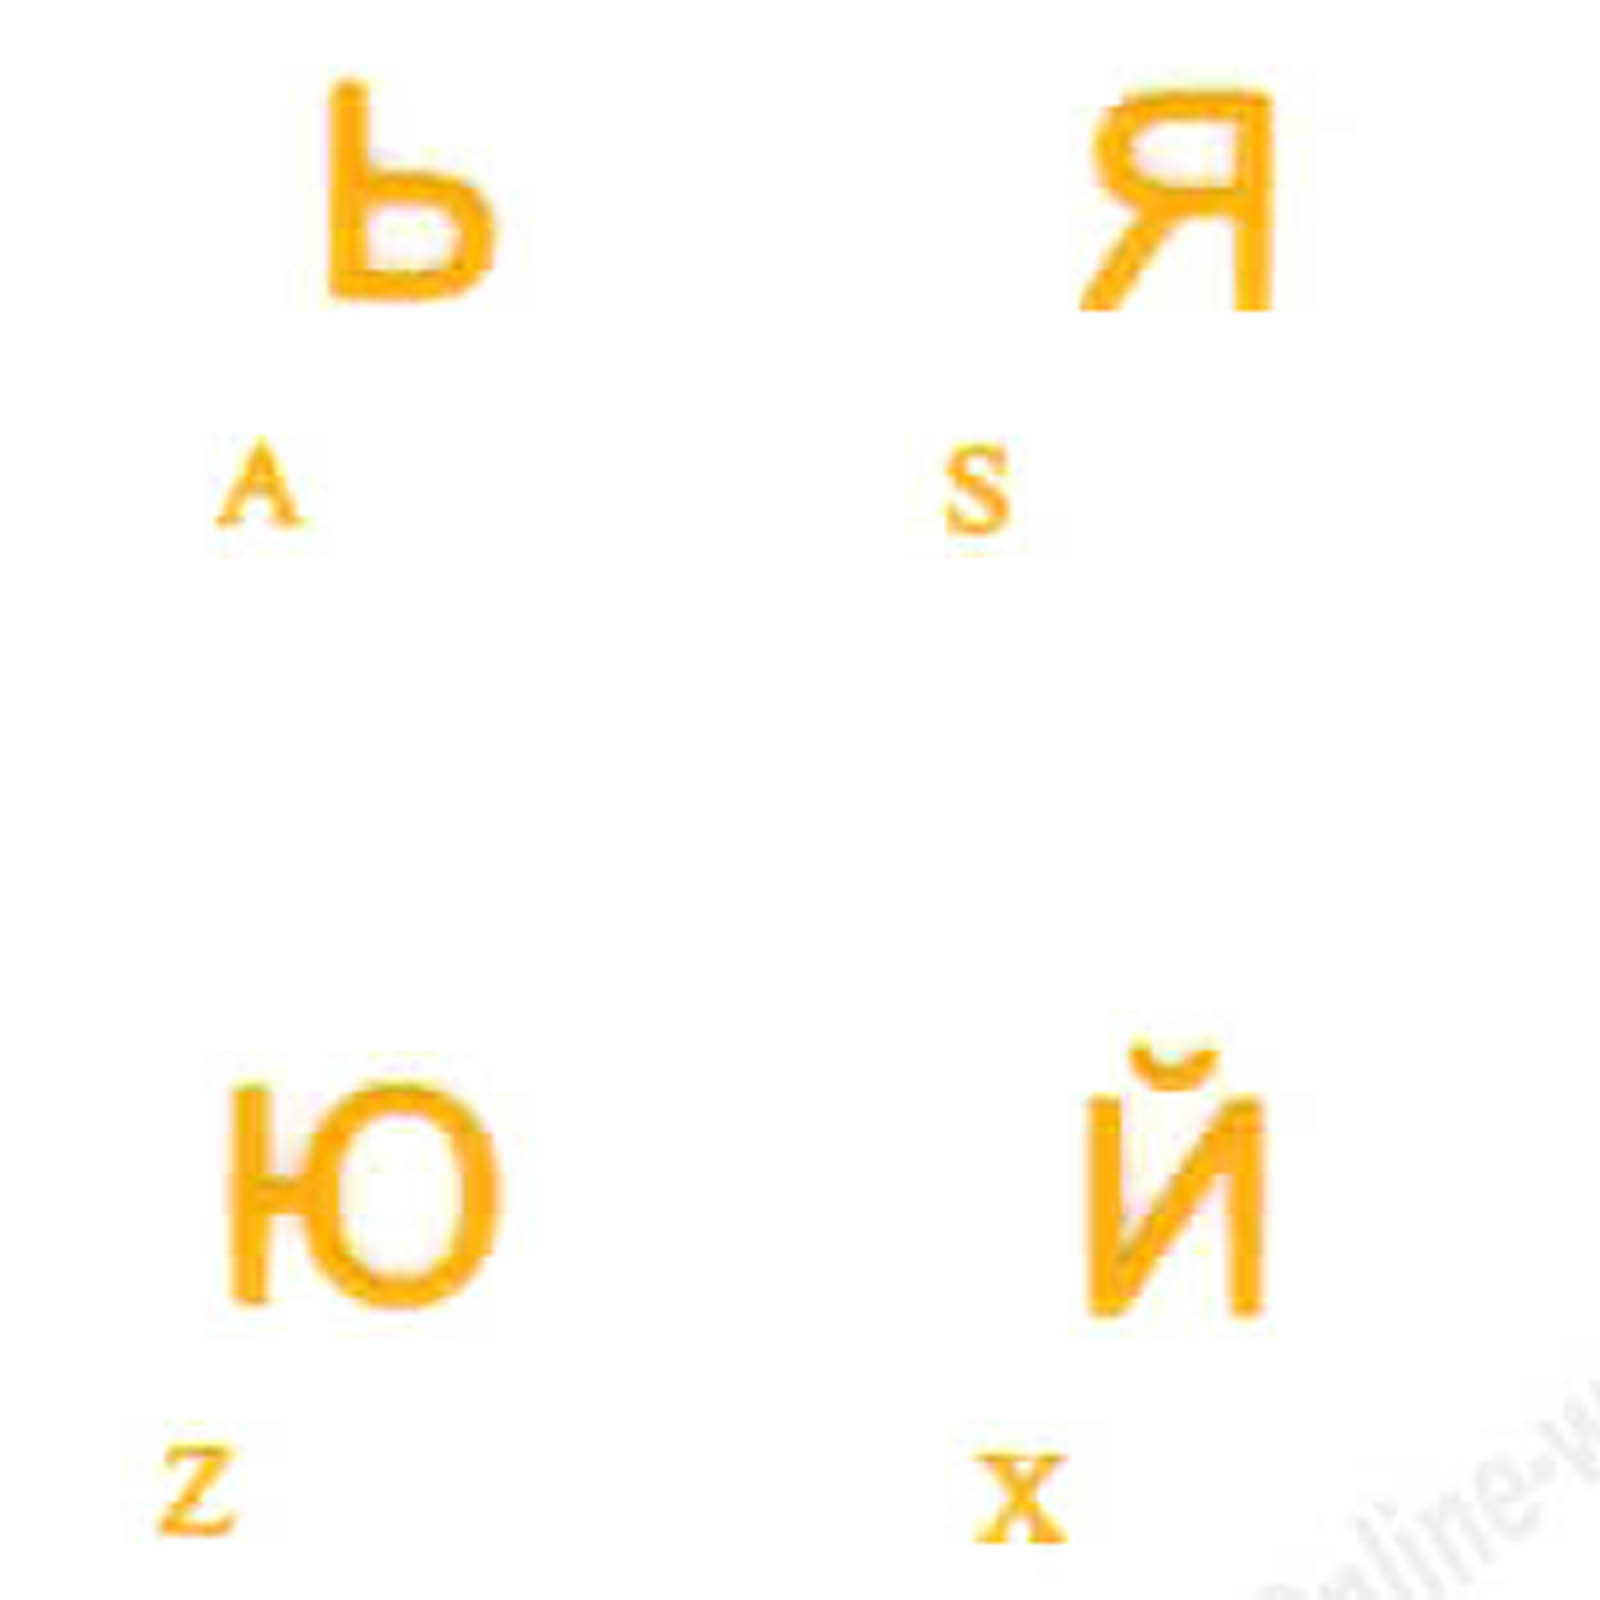 BULGARIAN STICKERS YELLOW LETTERS TRANSPARENT BACKGROUND